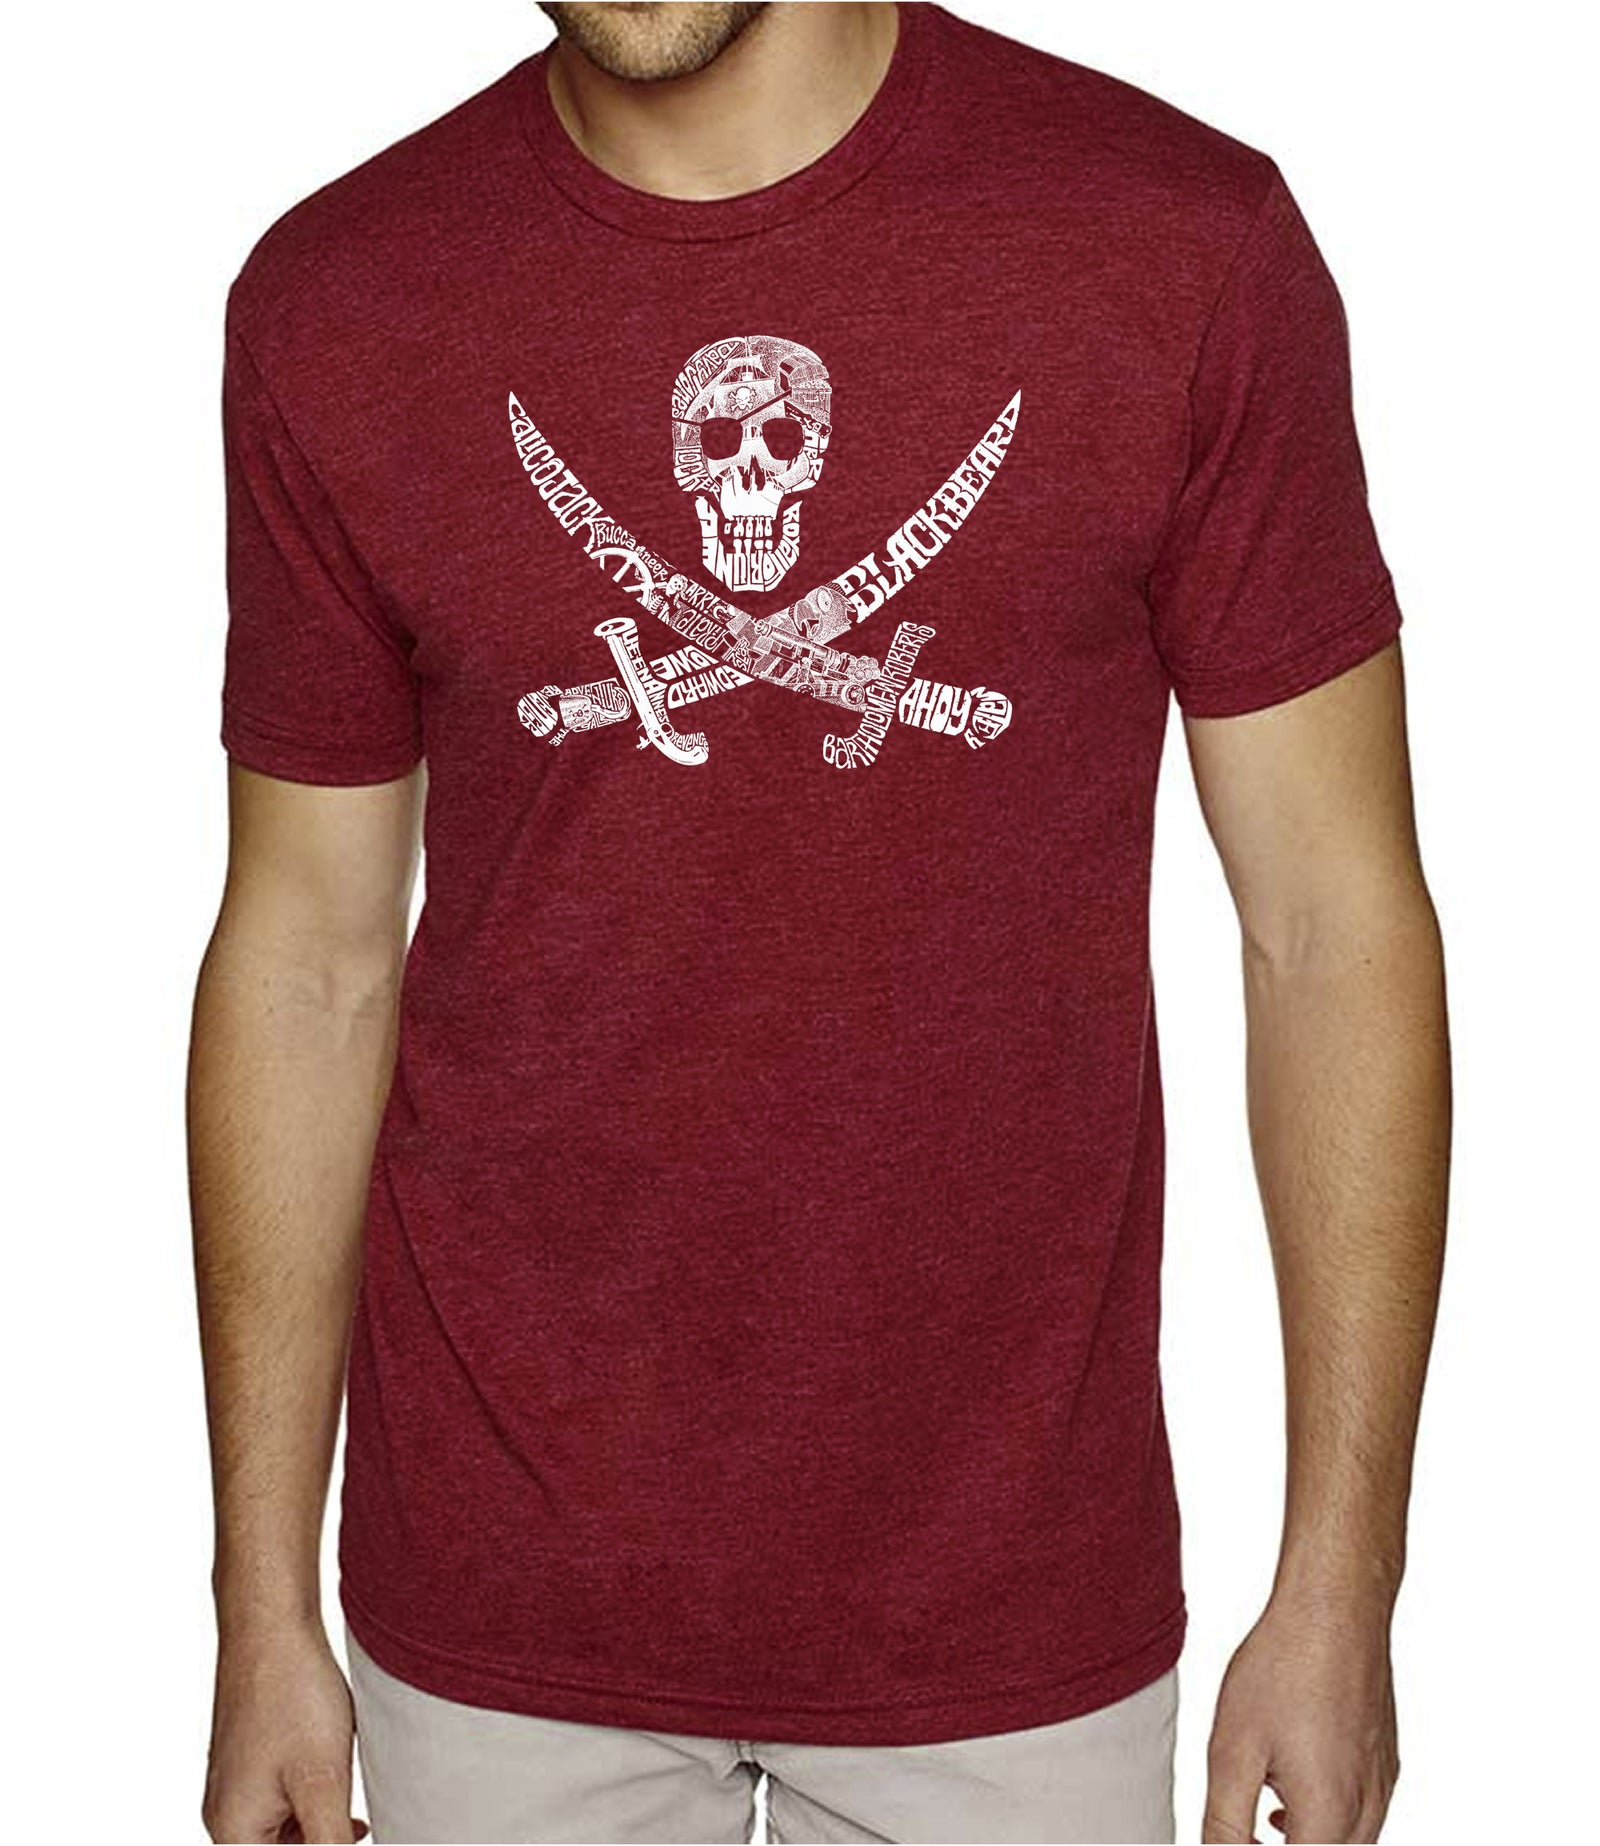 Men's Premium Blend Word Art T-shirt - PIRATE CAPTAINS, SHIPS AND IMAGERY